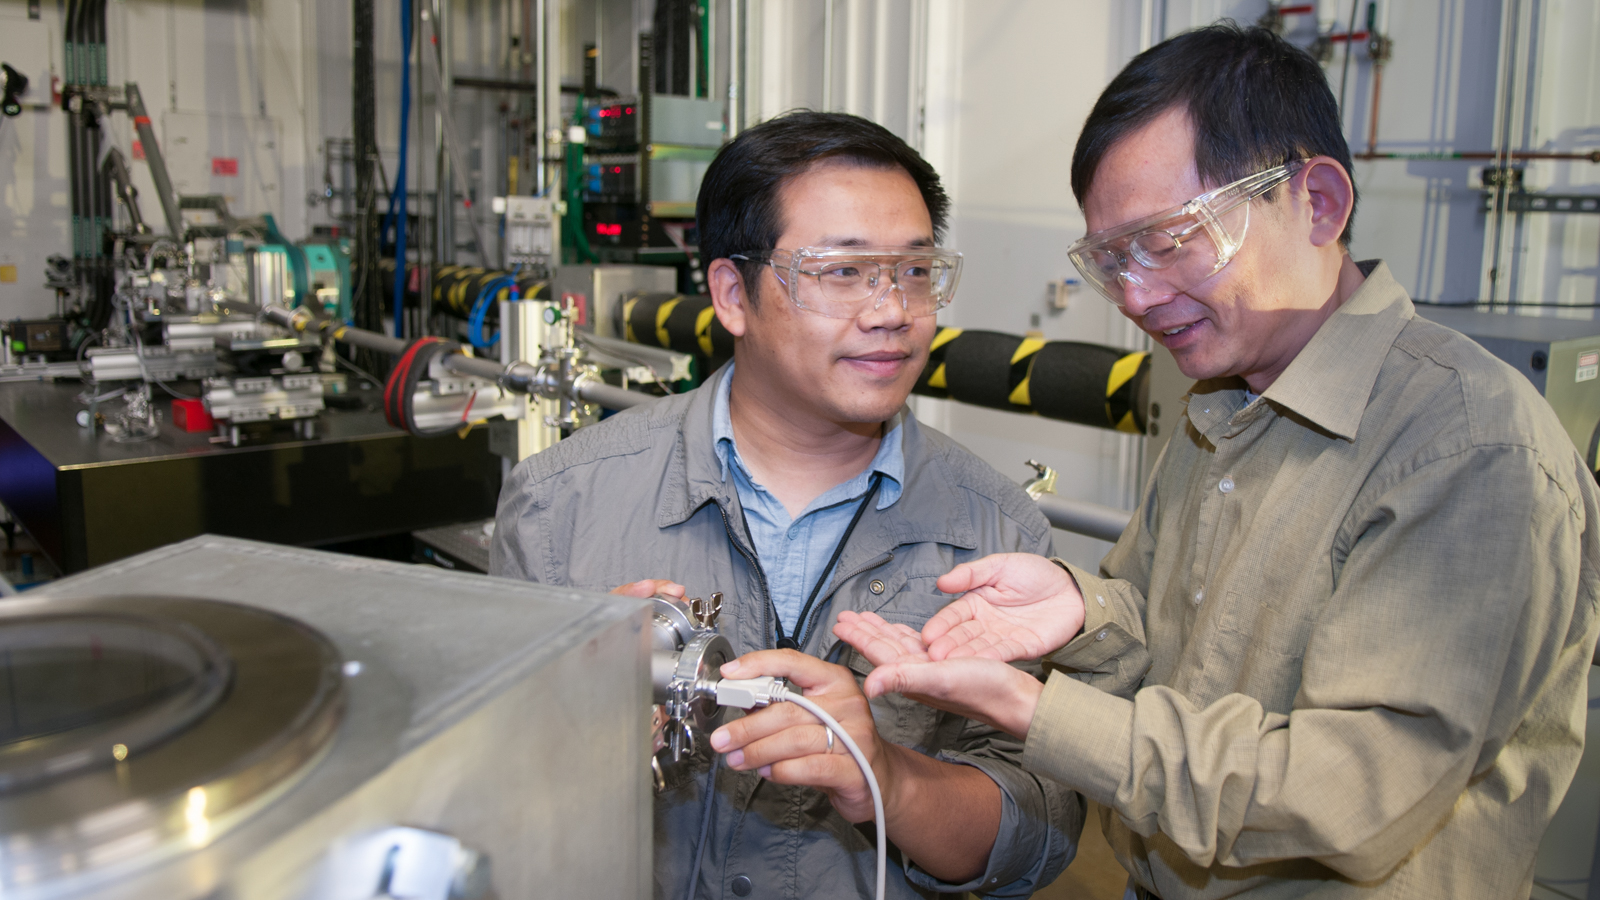 Tao Sun and Jin Wang, scientists at Argonne National Laboratory, use the Advanced Photon Source to design and test a new technique for X-ray detection.